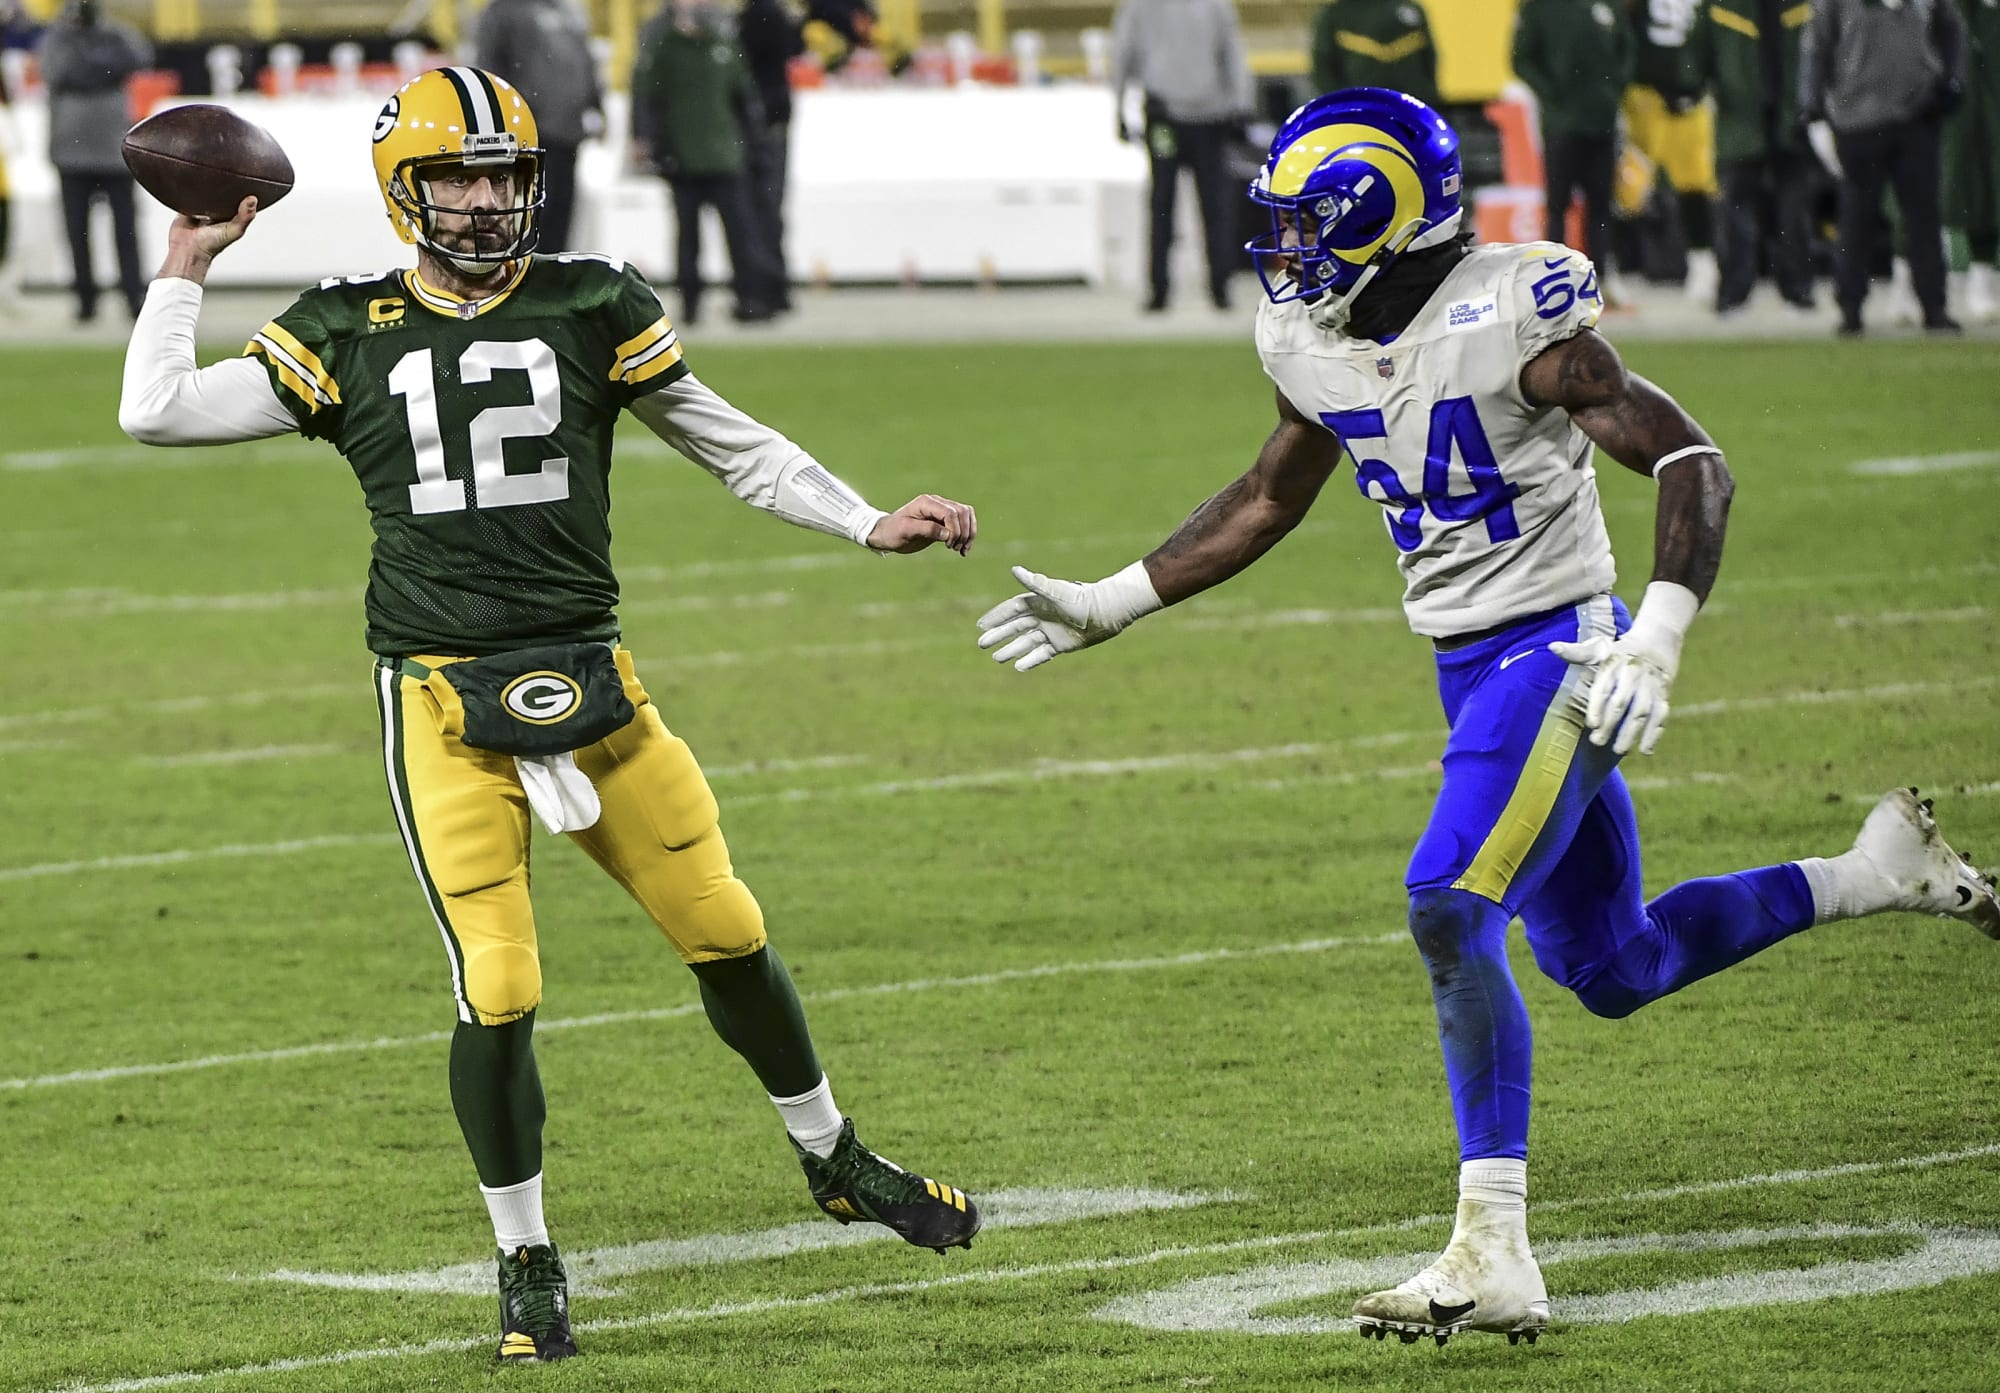 Denver Broncos: Good news if Aaron Rodgers turns down contract